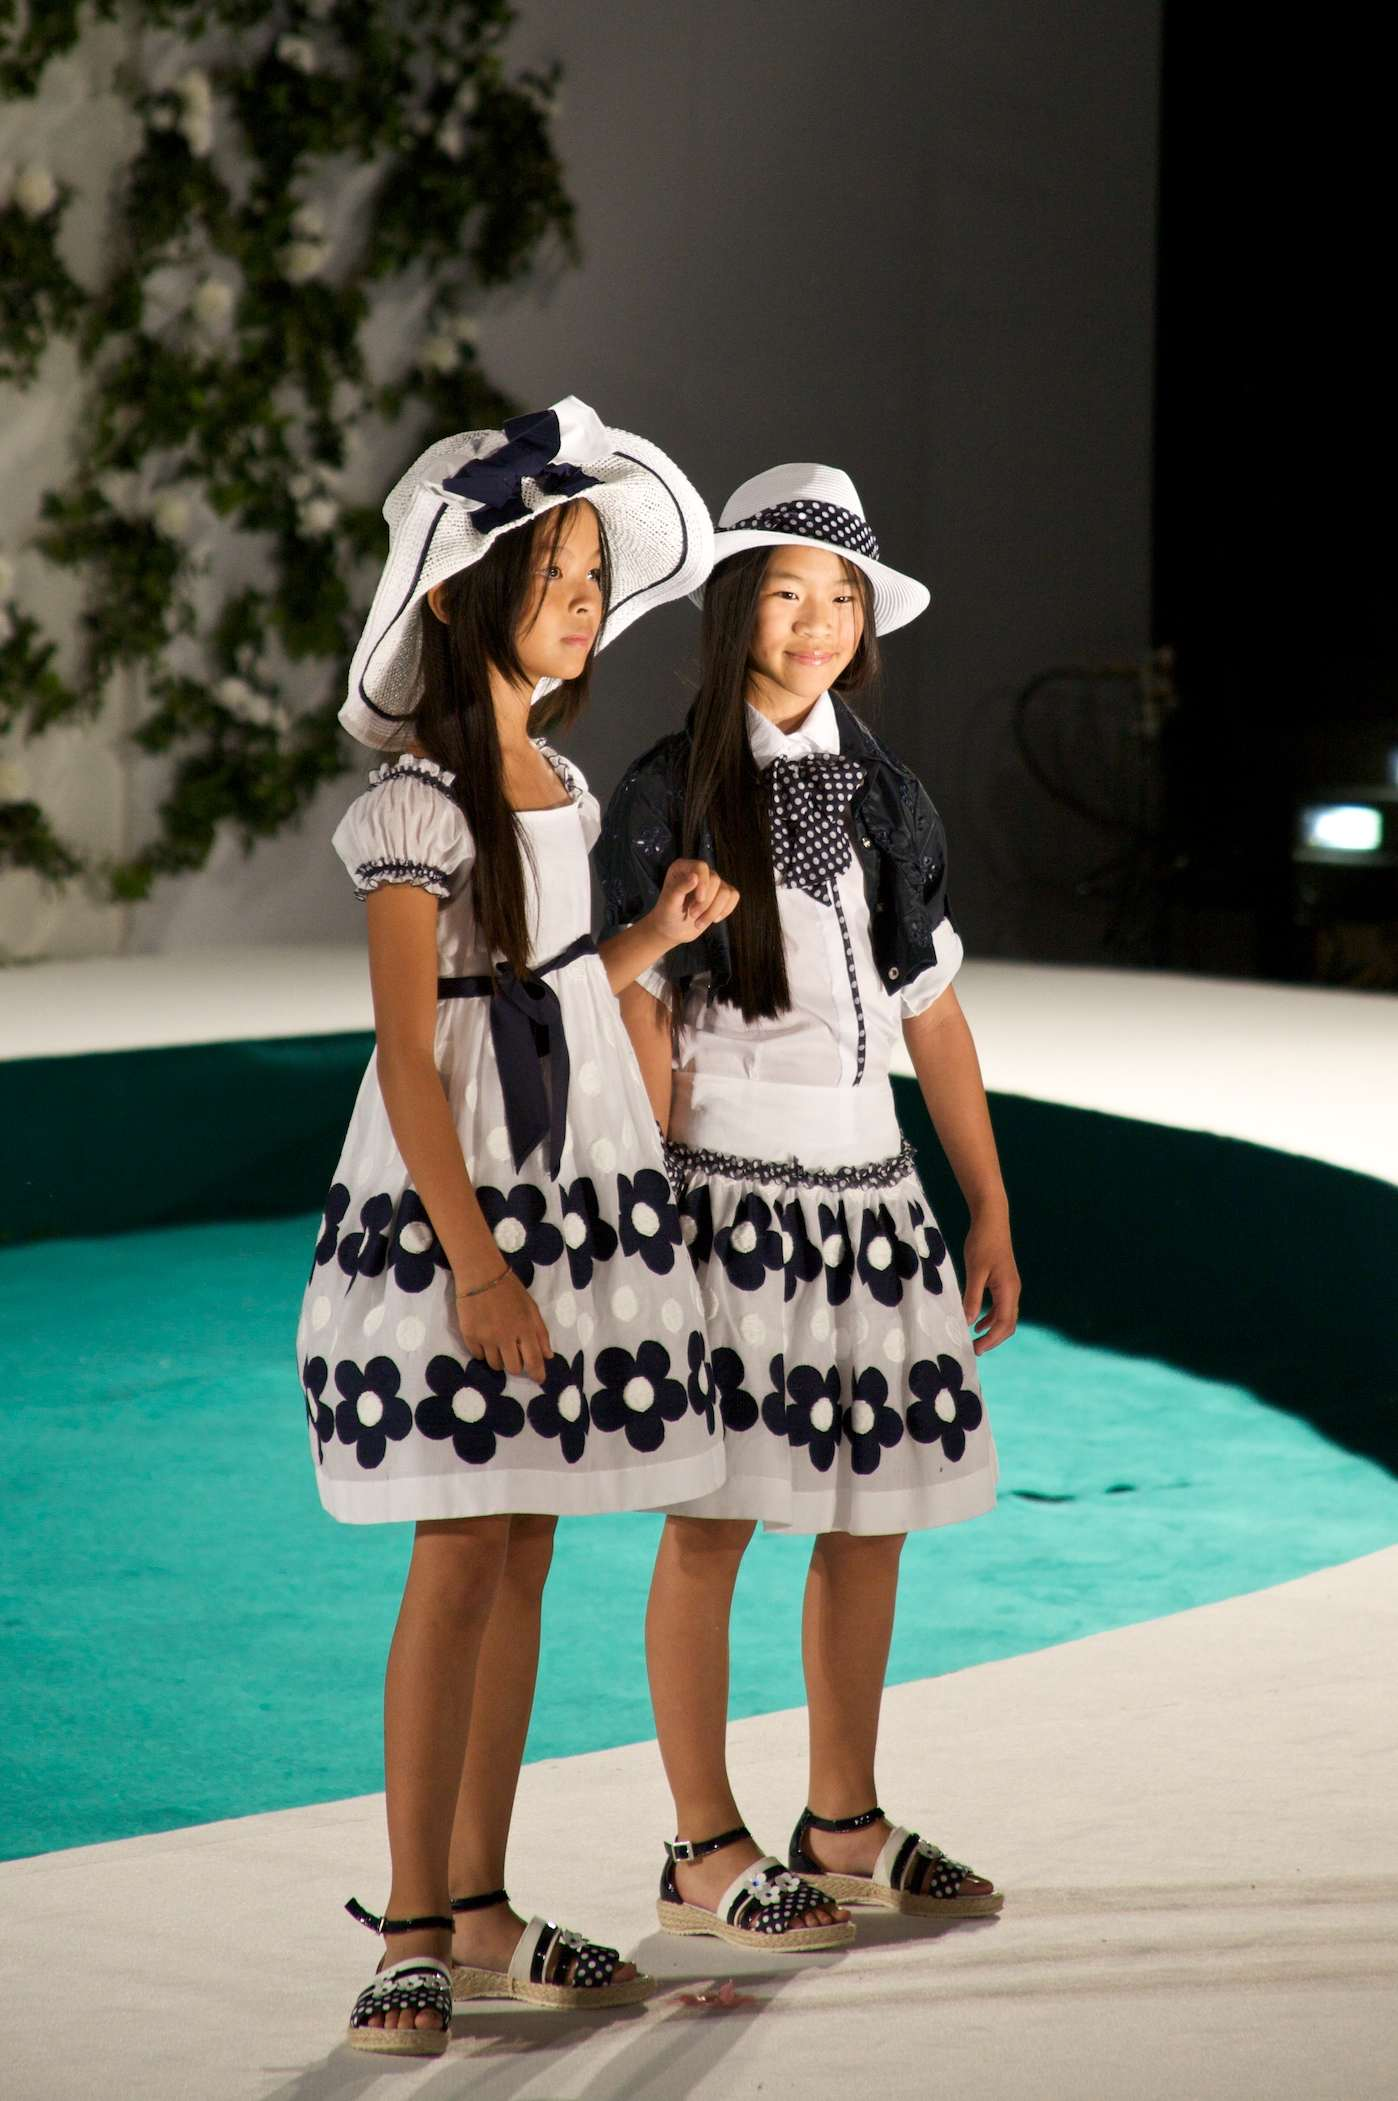 Big daisy patterns at Monnaiisa girlswear for summer 2012